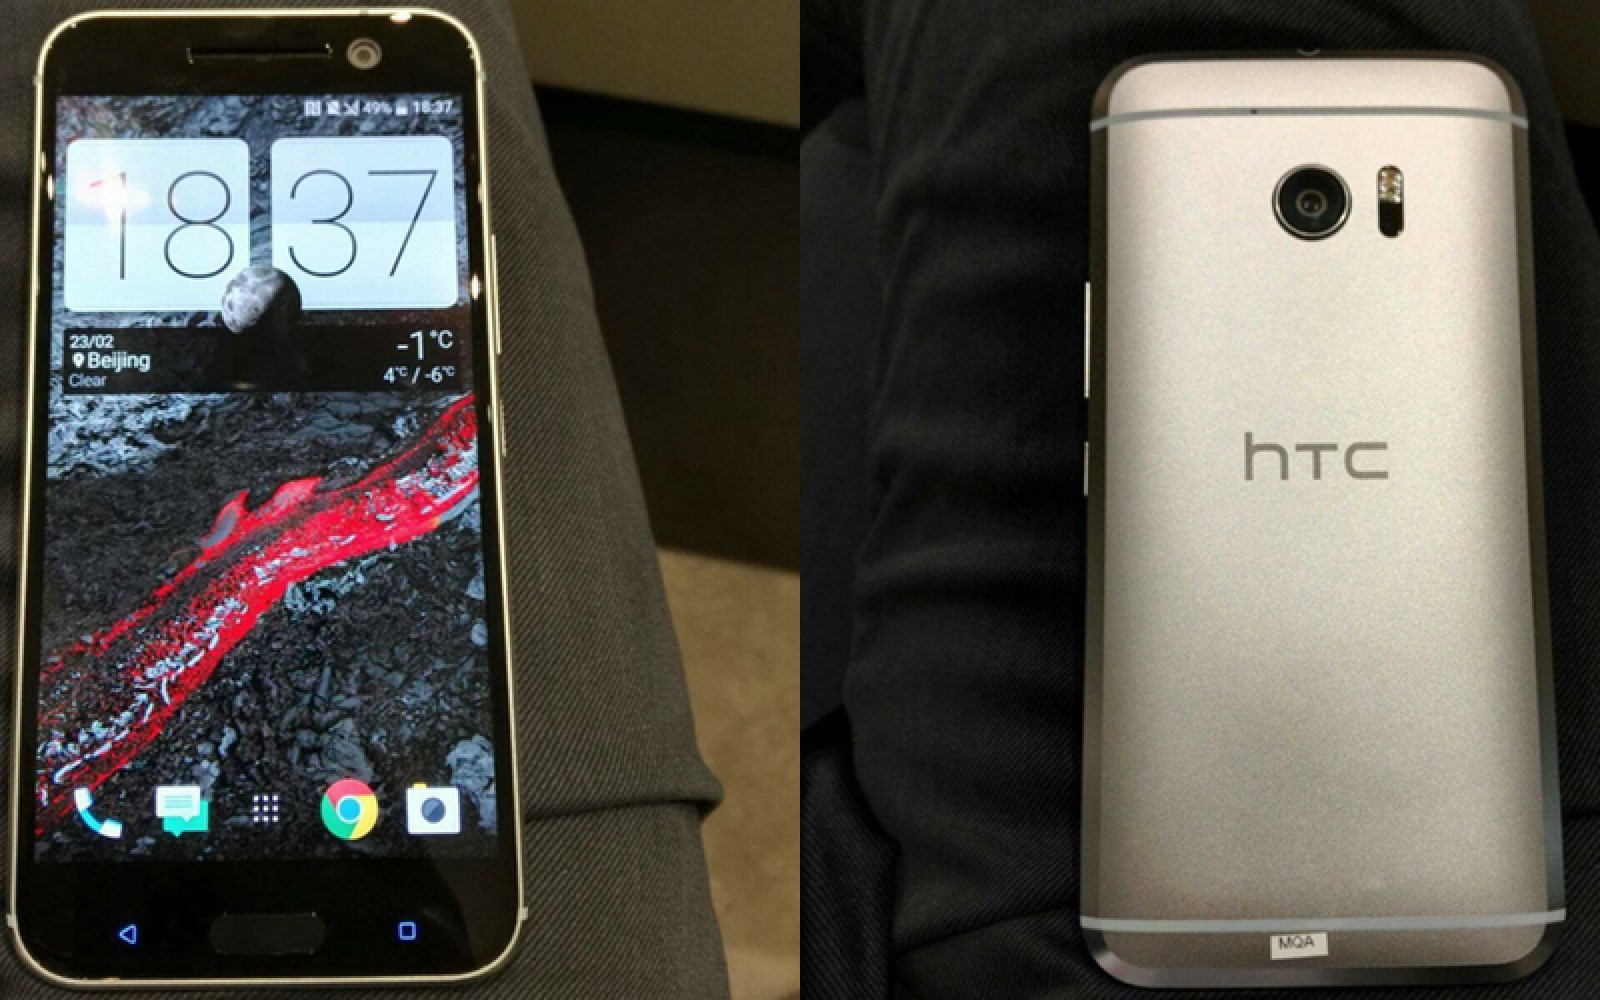 HTC 10 real life images emerge, seemingly show a close-to-finalized device